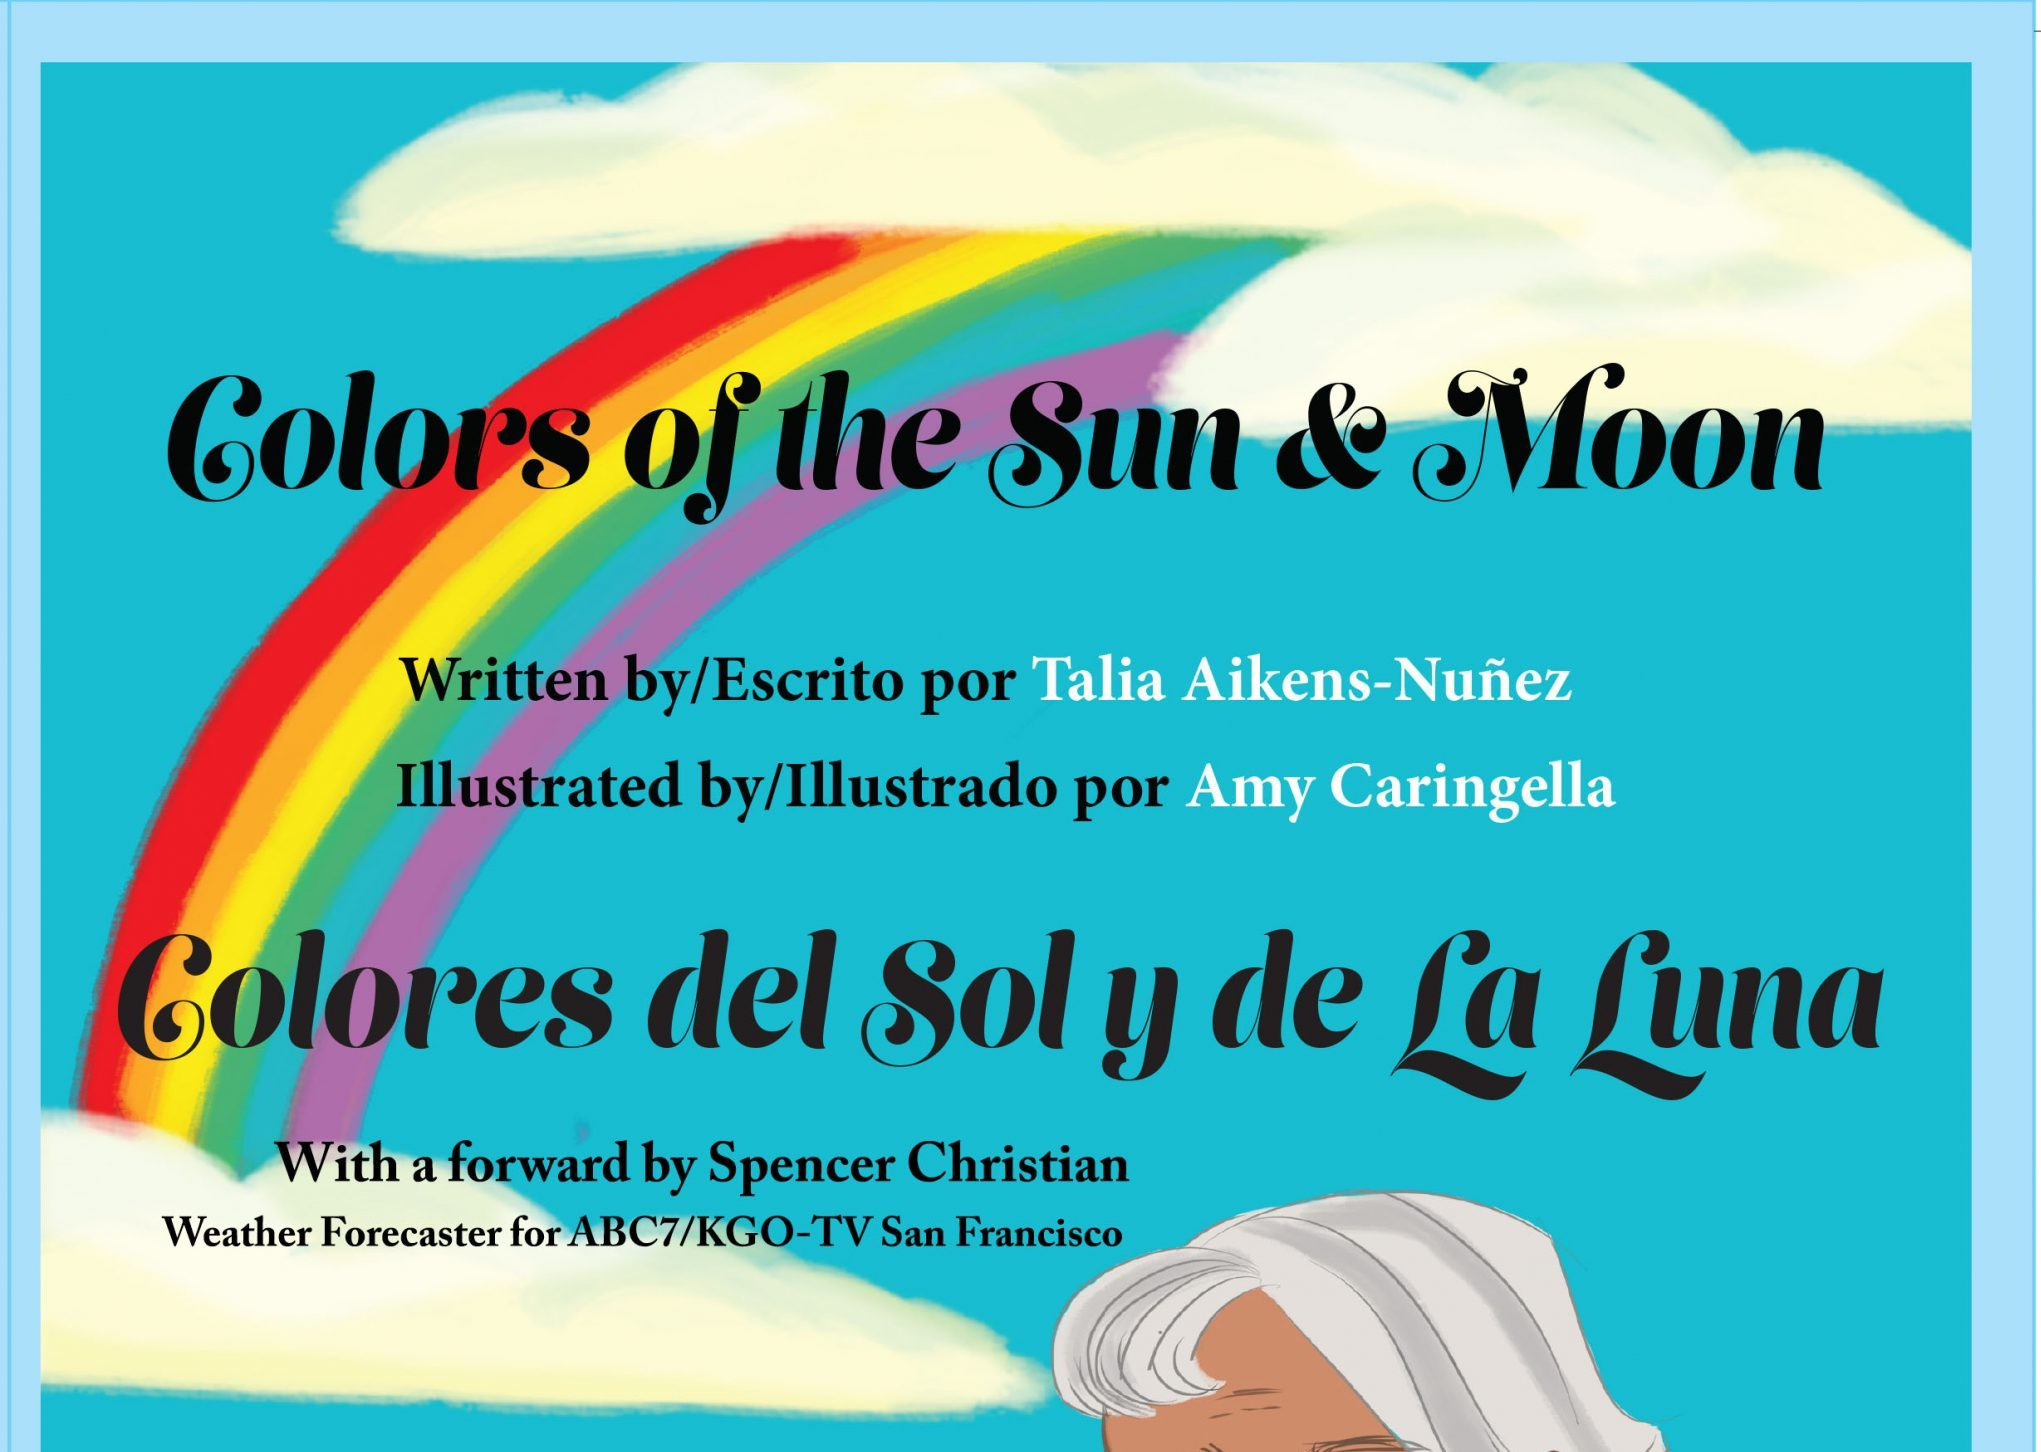 talia aikens nunez, colors of the sun and moon, spanish